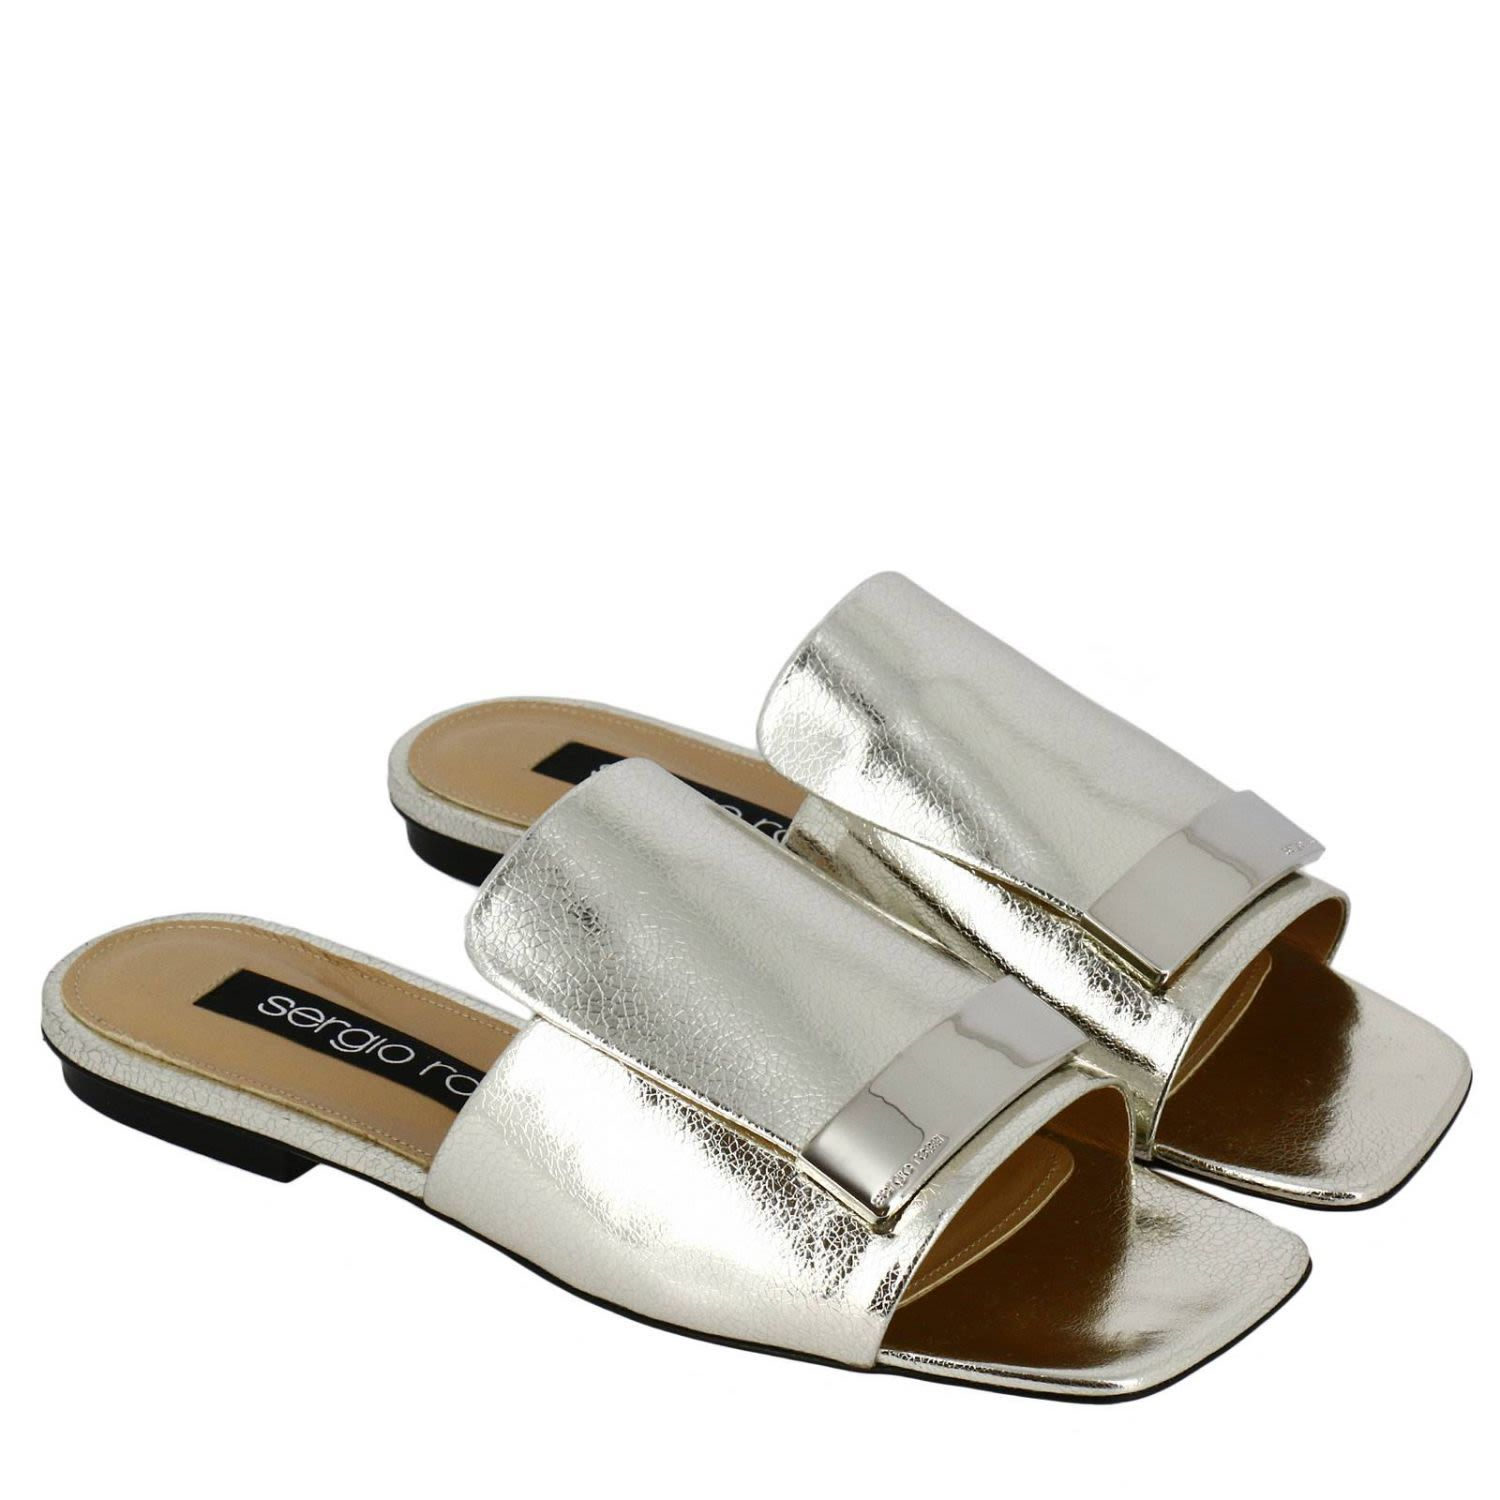 Sergio Rossi Textured Strap Mules Outlet Get Authentic jA2ZTNkLh